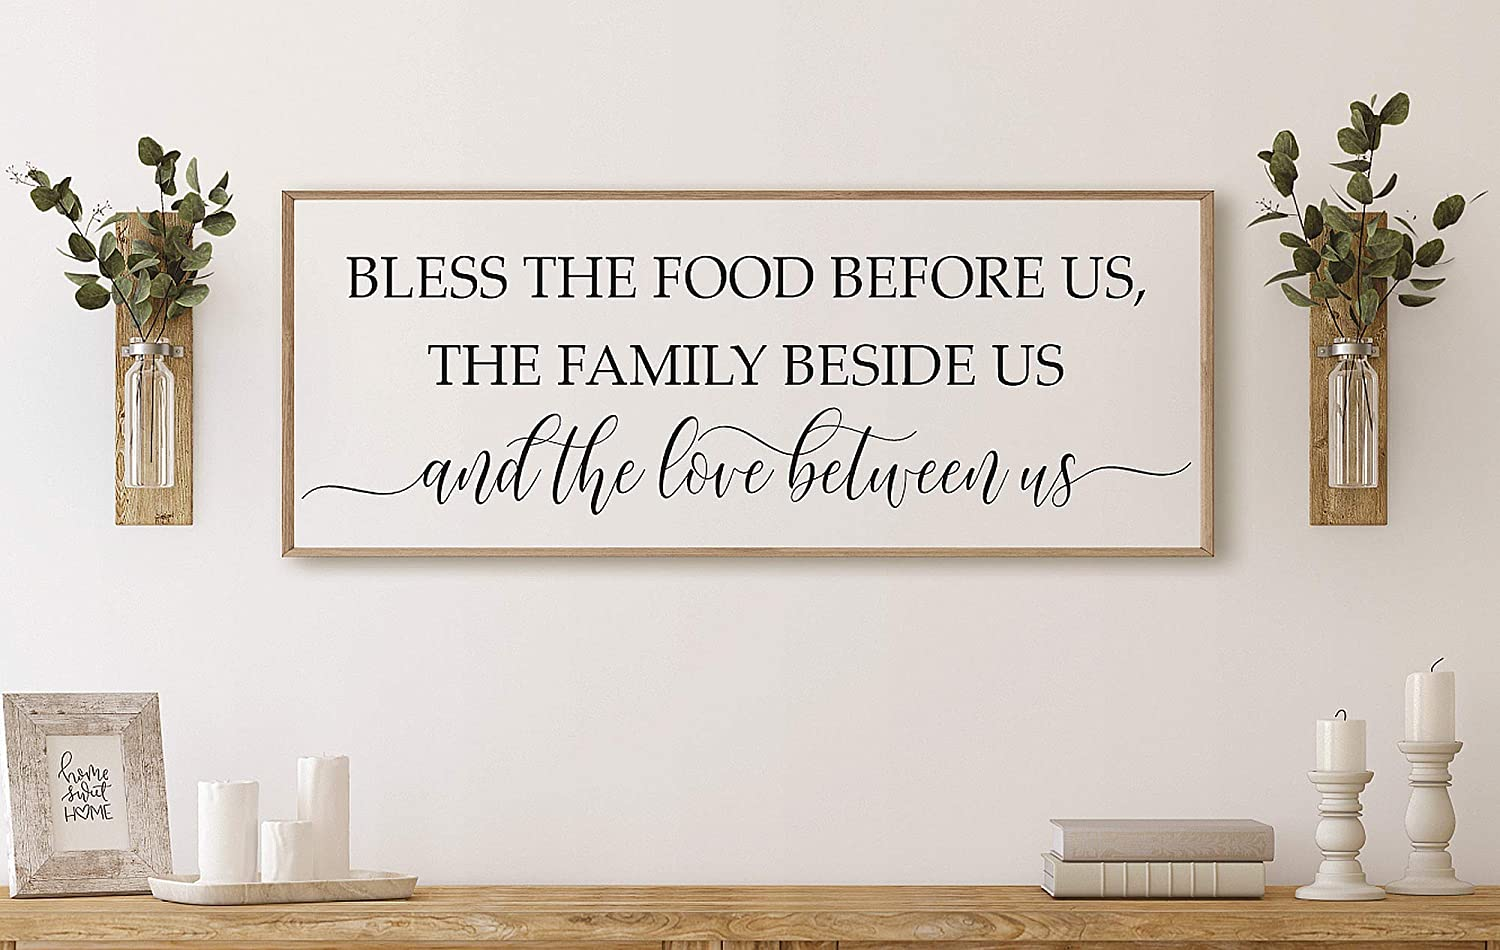 Bless the food before us sign kitchen decor dining room prayer wall framed sign